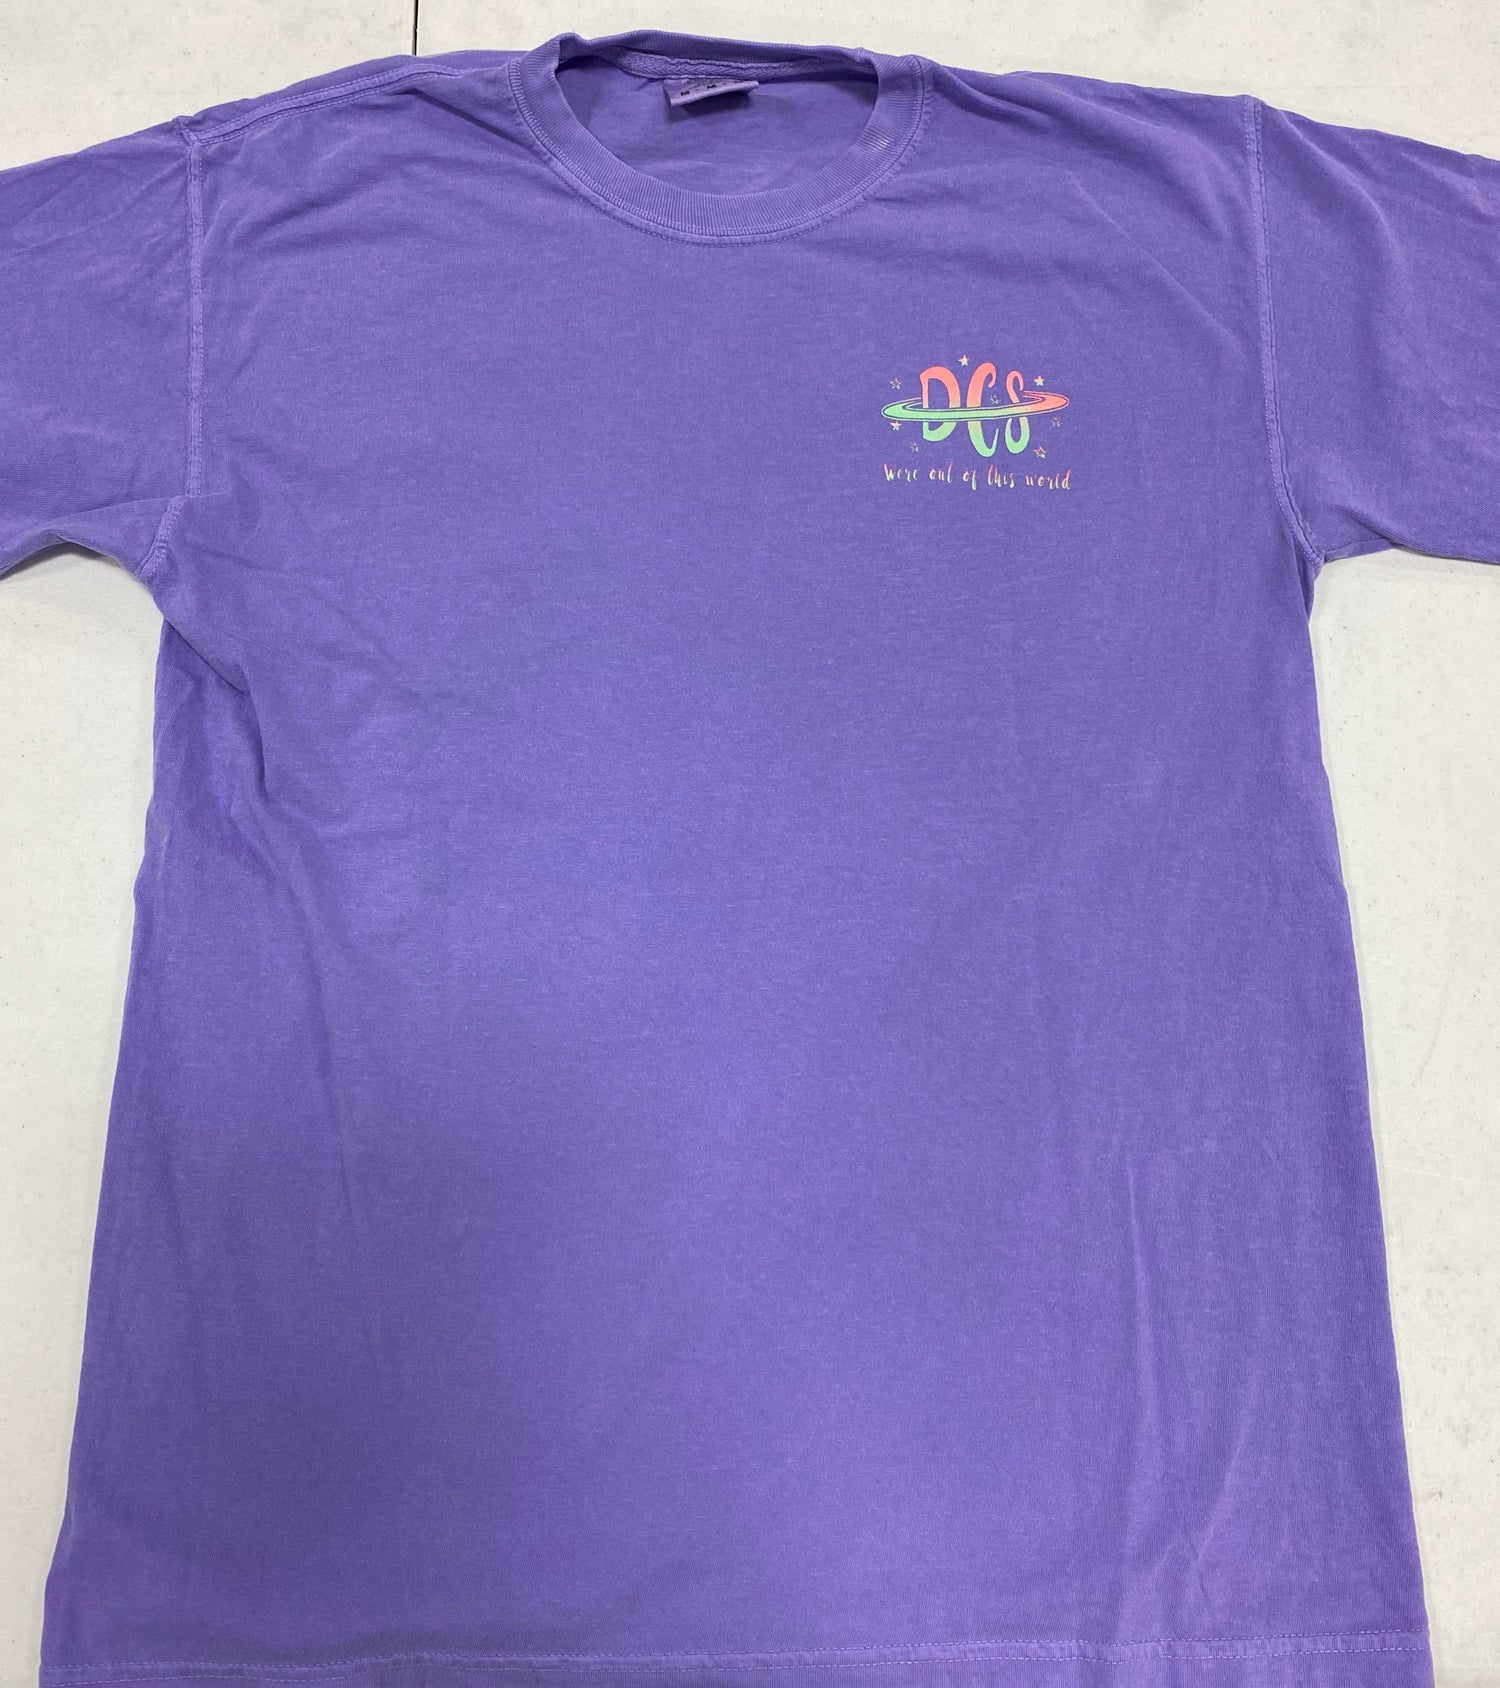 Image of TeamDCS Space Shirt WITHOUT pocket - LONG Sleeve